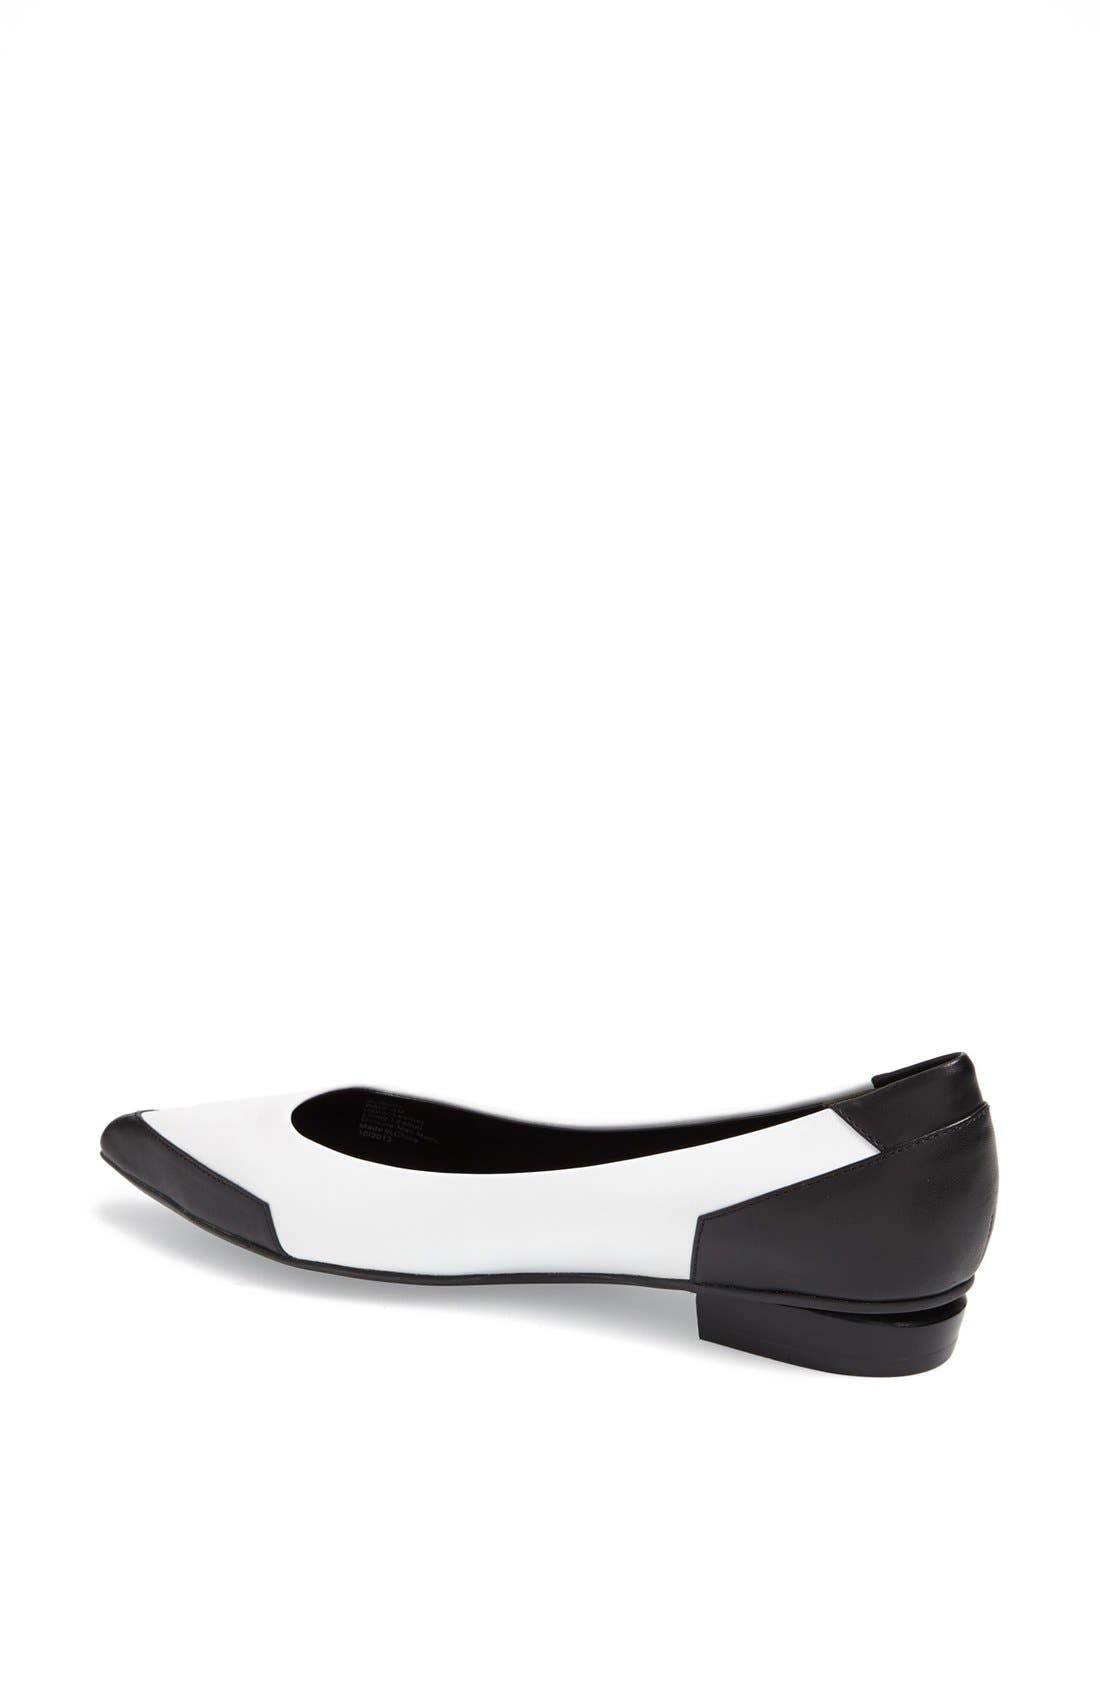 Alternate Image 2  - Kenneth Cole New York 'Mulberry' Leather Flat